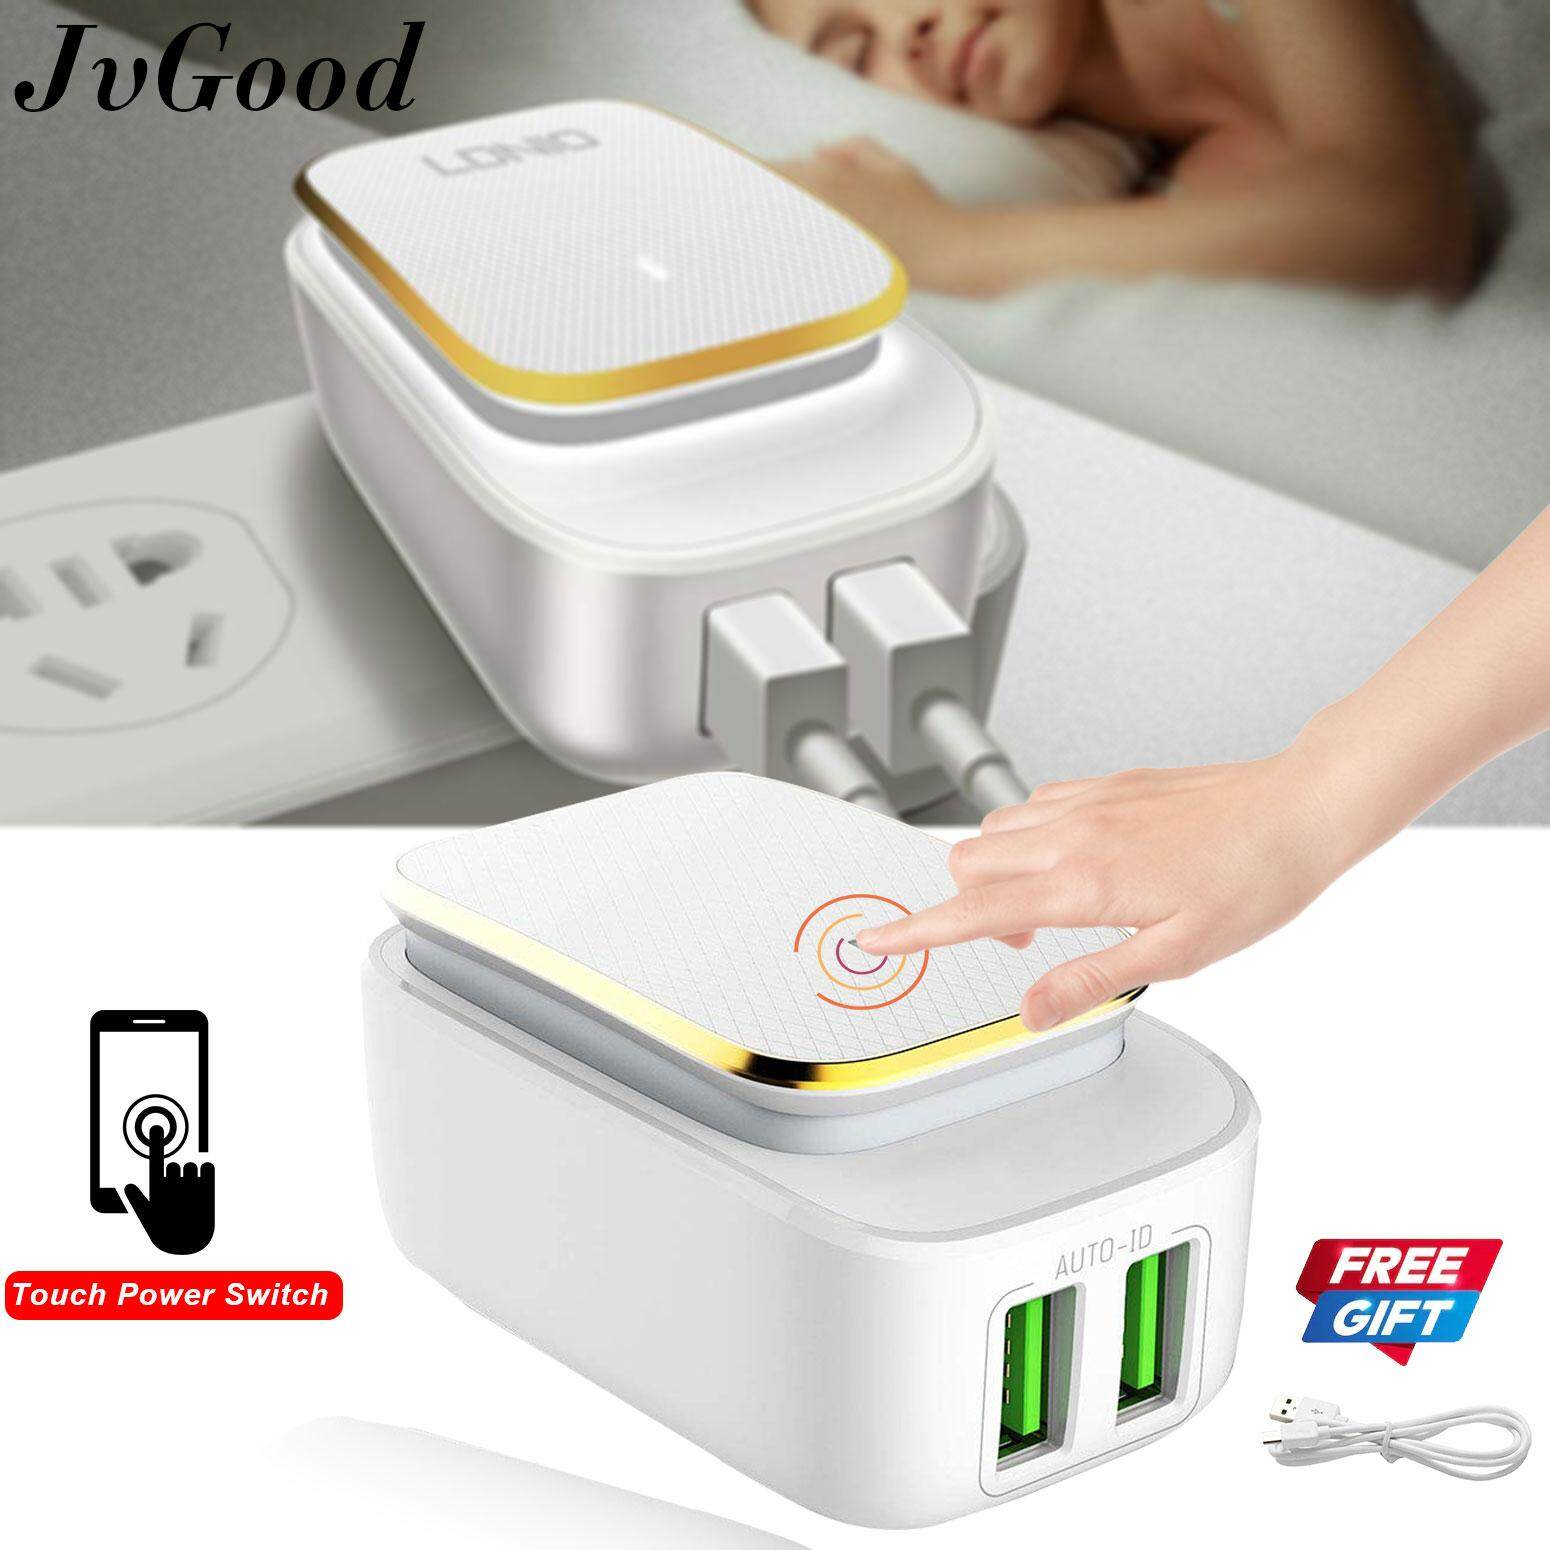 Jvgood Touch Led Lamp And 5v/2.4a 2 Usb Charger Travel Wall Charger Adapter 12w Portable Smart Mobile Phone Home Charger With A Free Android Charging Cable By Jvgood.